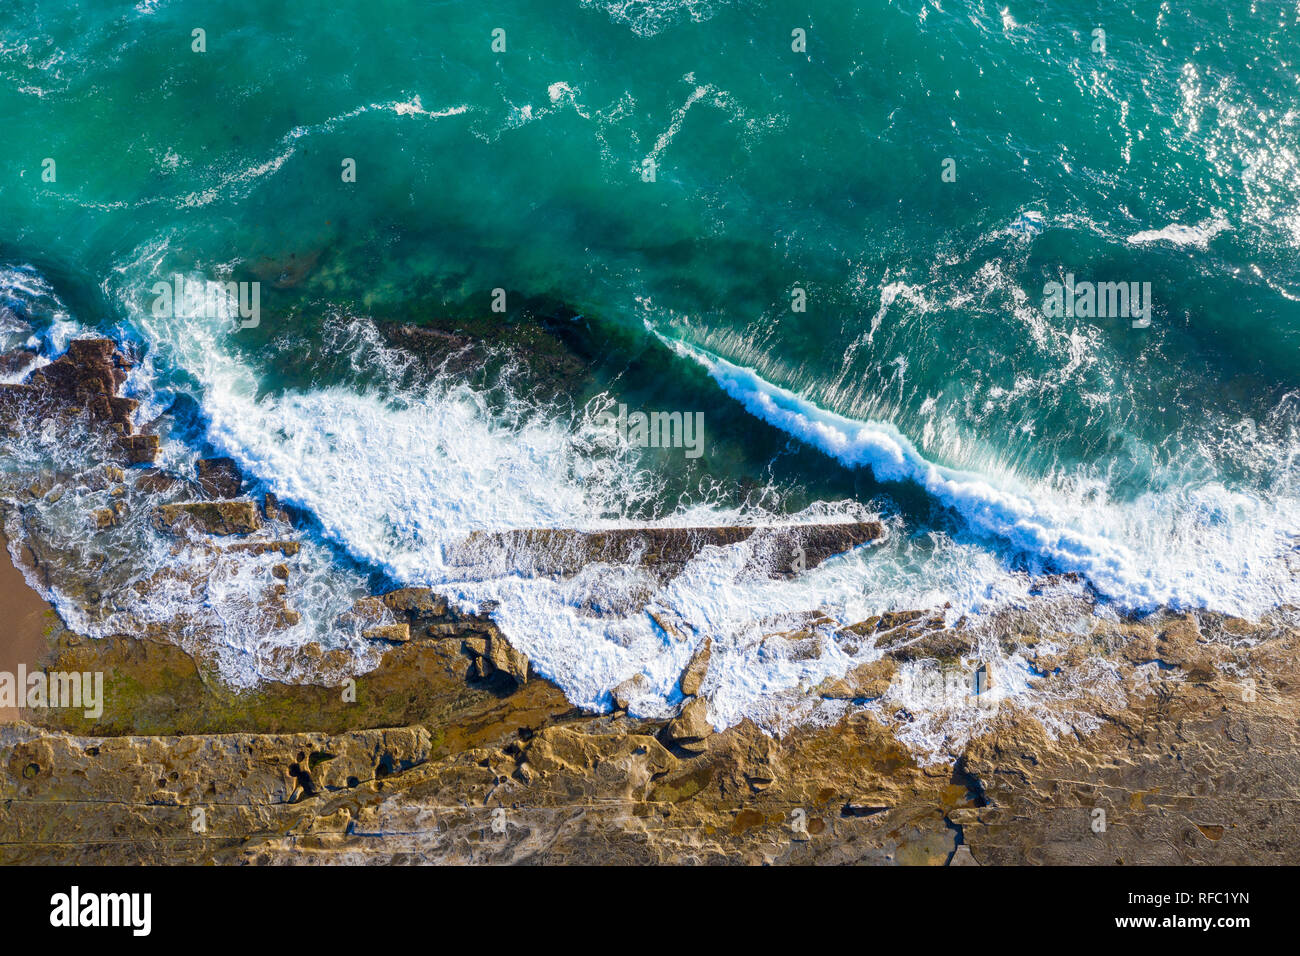 Top down view of the waves crashing onto the rock shelf at Dudley Beach - Newastle Australia. Aerial view of rugged coastal lanscape. Stock Photo